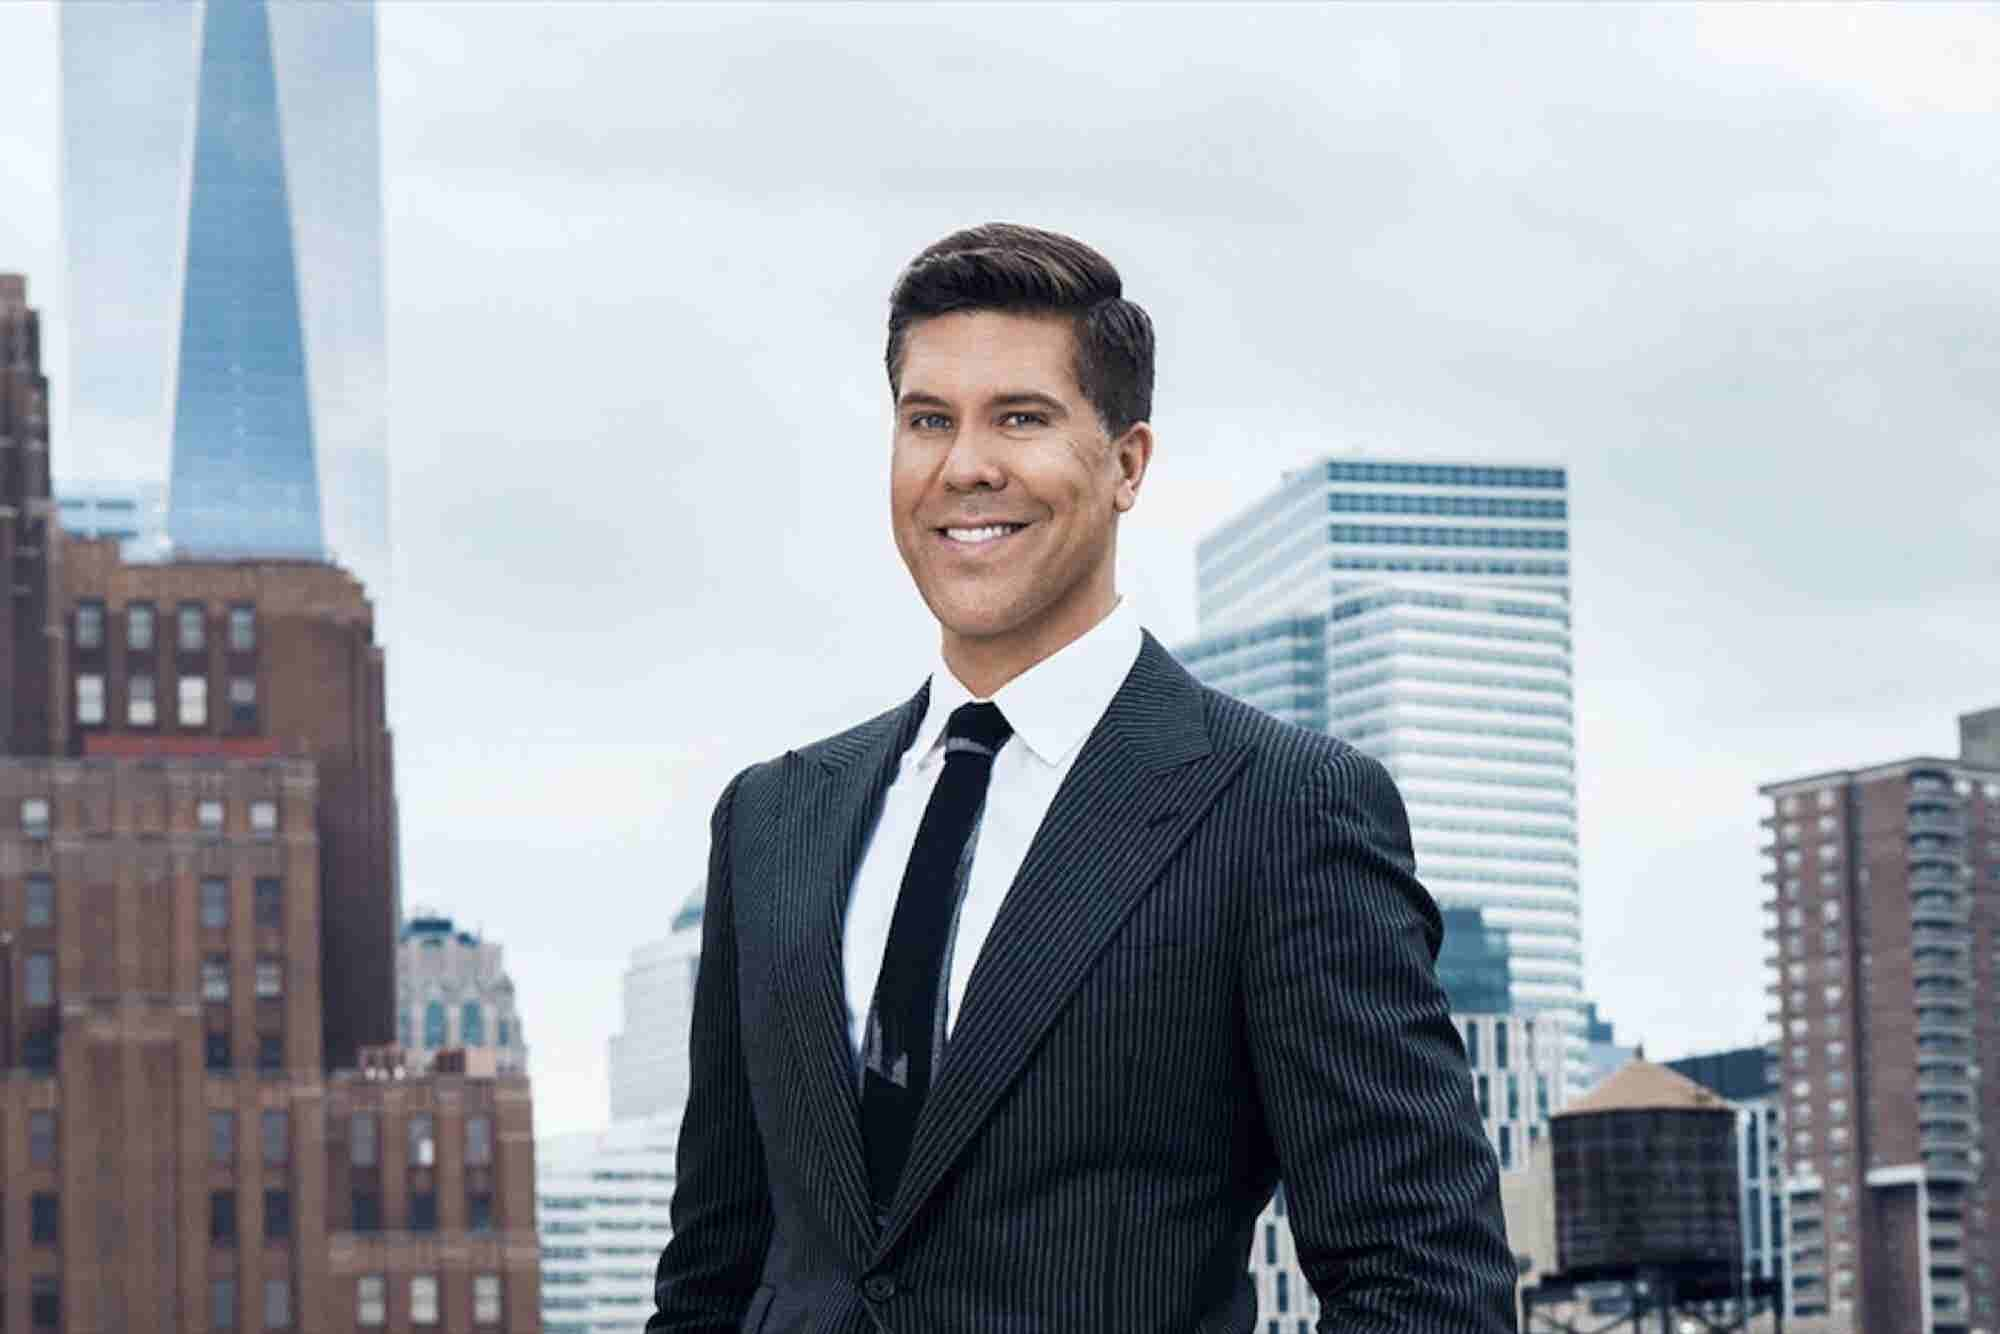 How to Sell to the Super Wealthy, According to Fredrik Eklund From 'Million Dollar Listing'